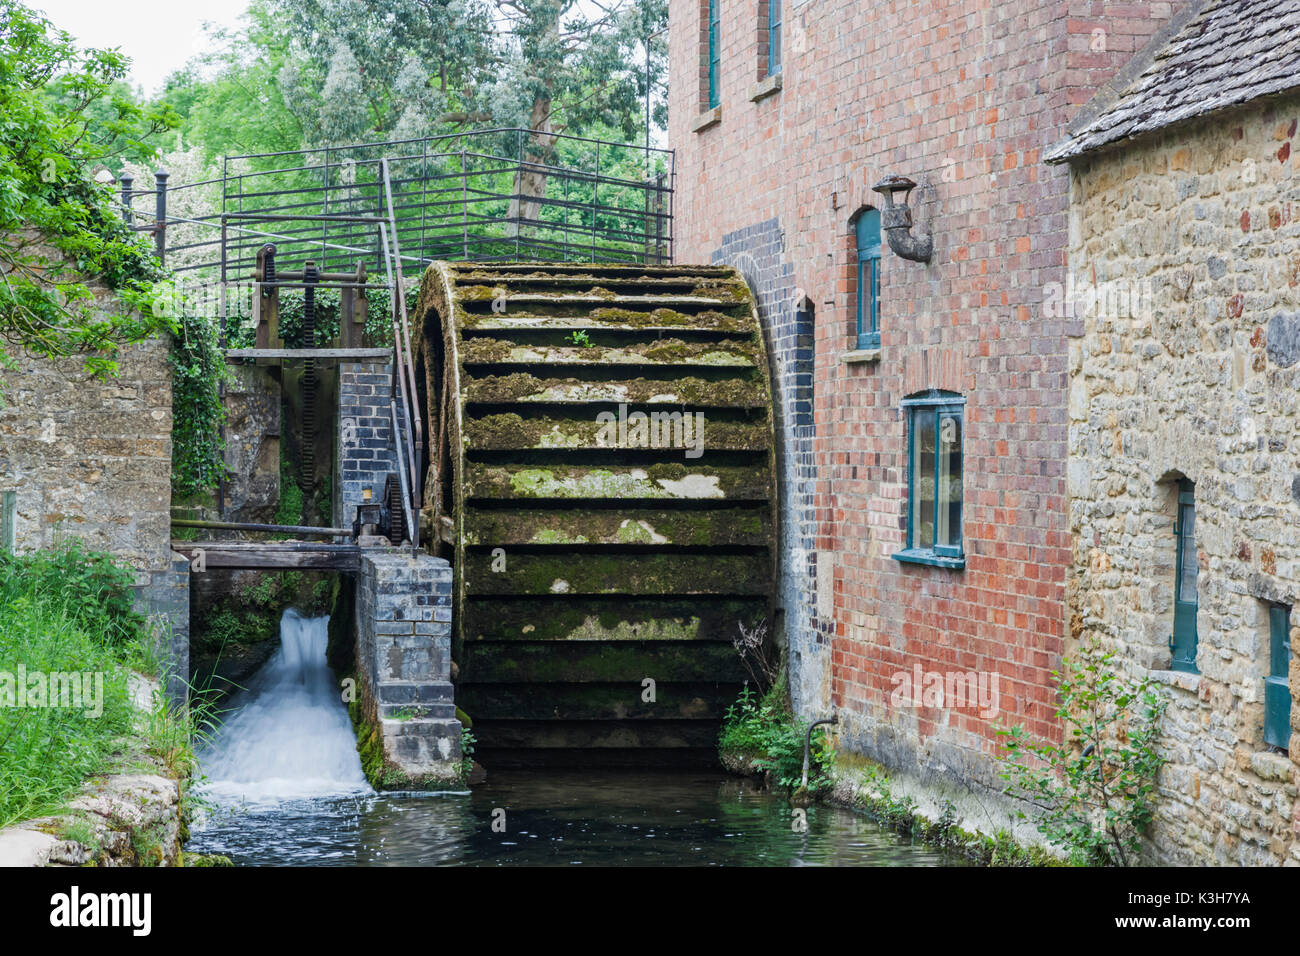 England, Gloucestershire, Cotswolds, Lower Slaughter, Watermill - Stock Image